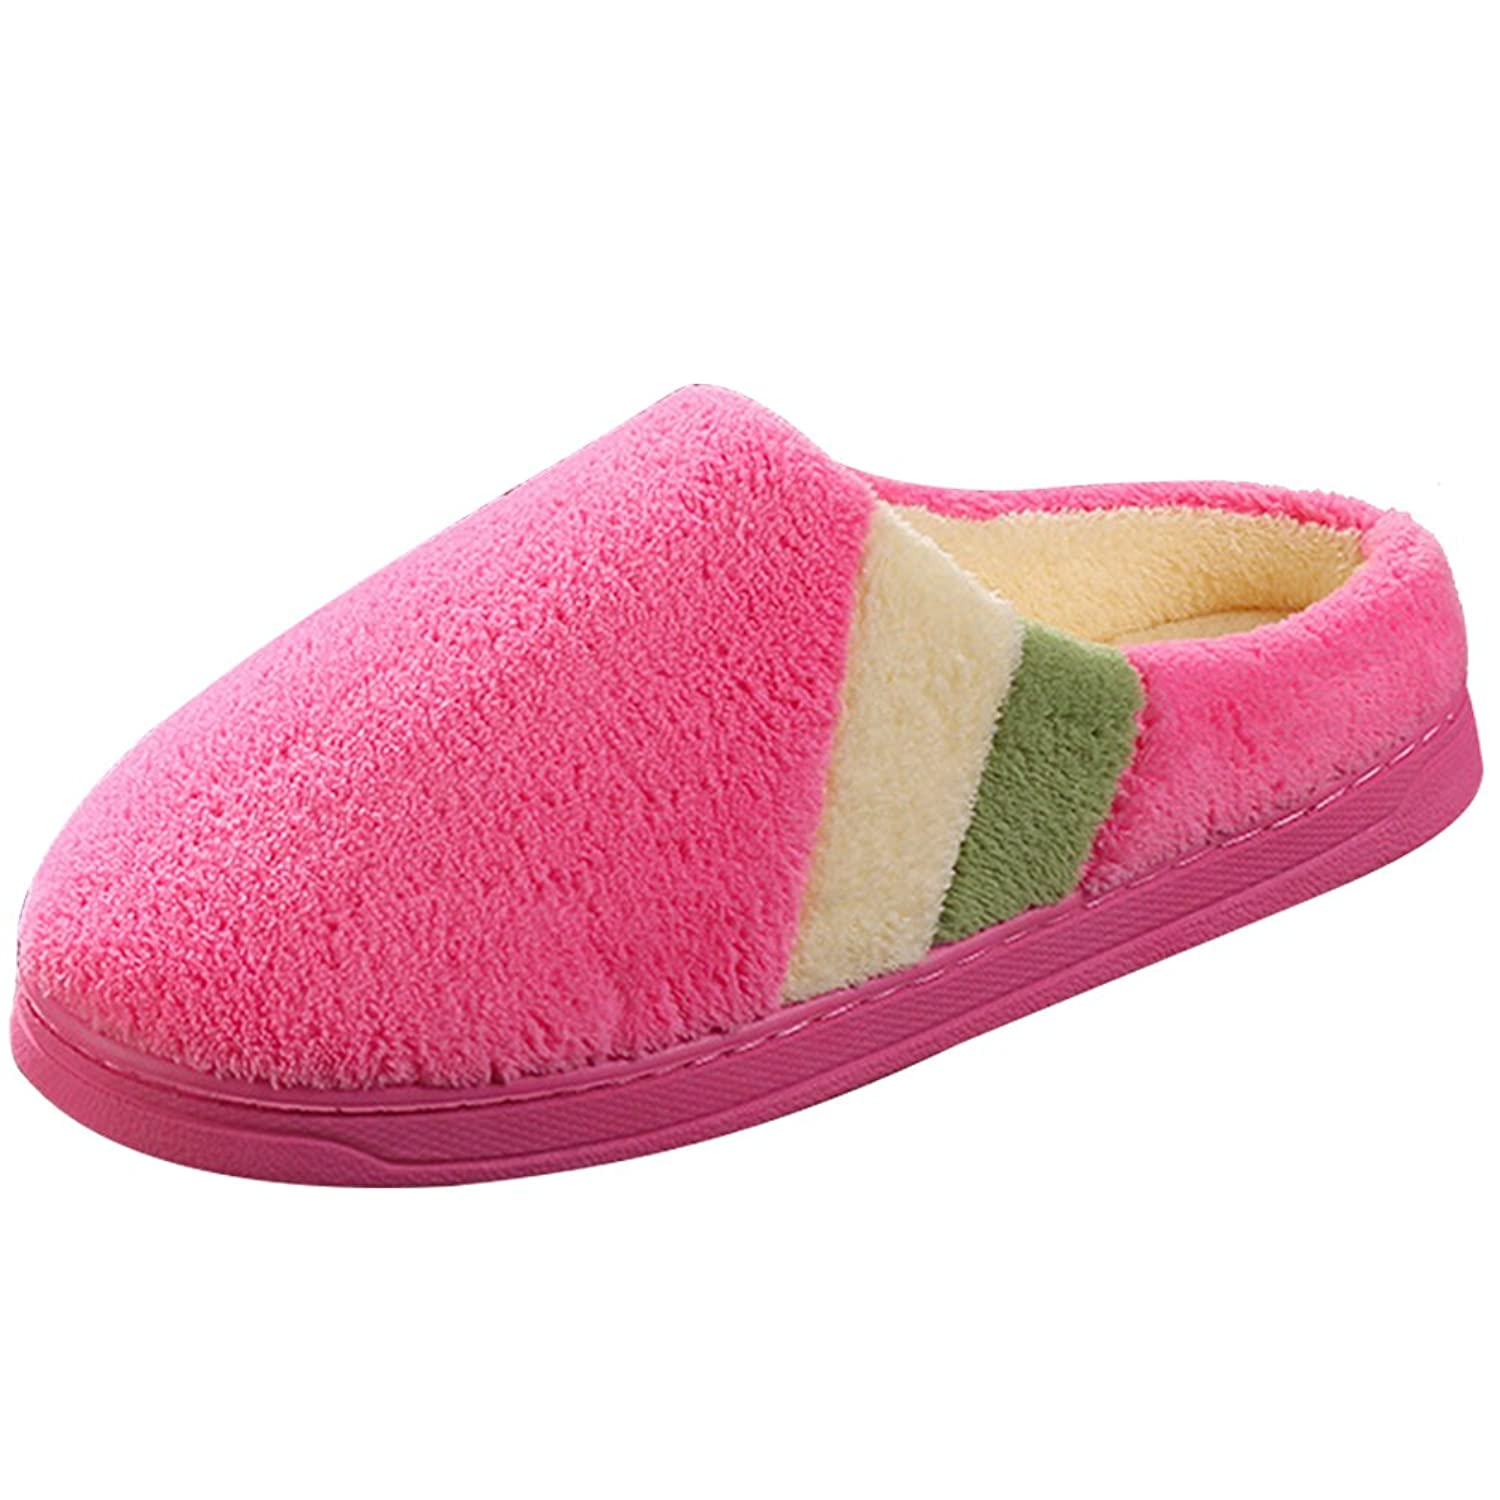 1b6c83361ec0 on sale SITAILE Women Men Home Indoor Warm Shoes Suede Plush Fleece Slipper  Soft Fur Stripe